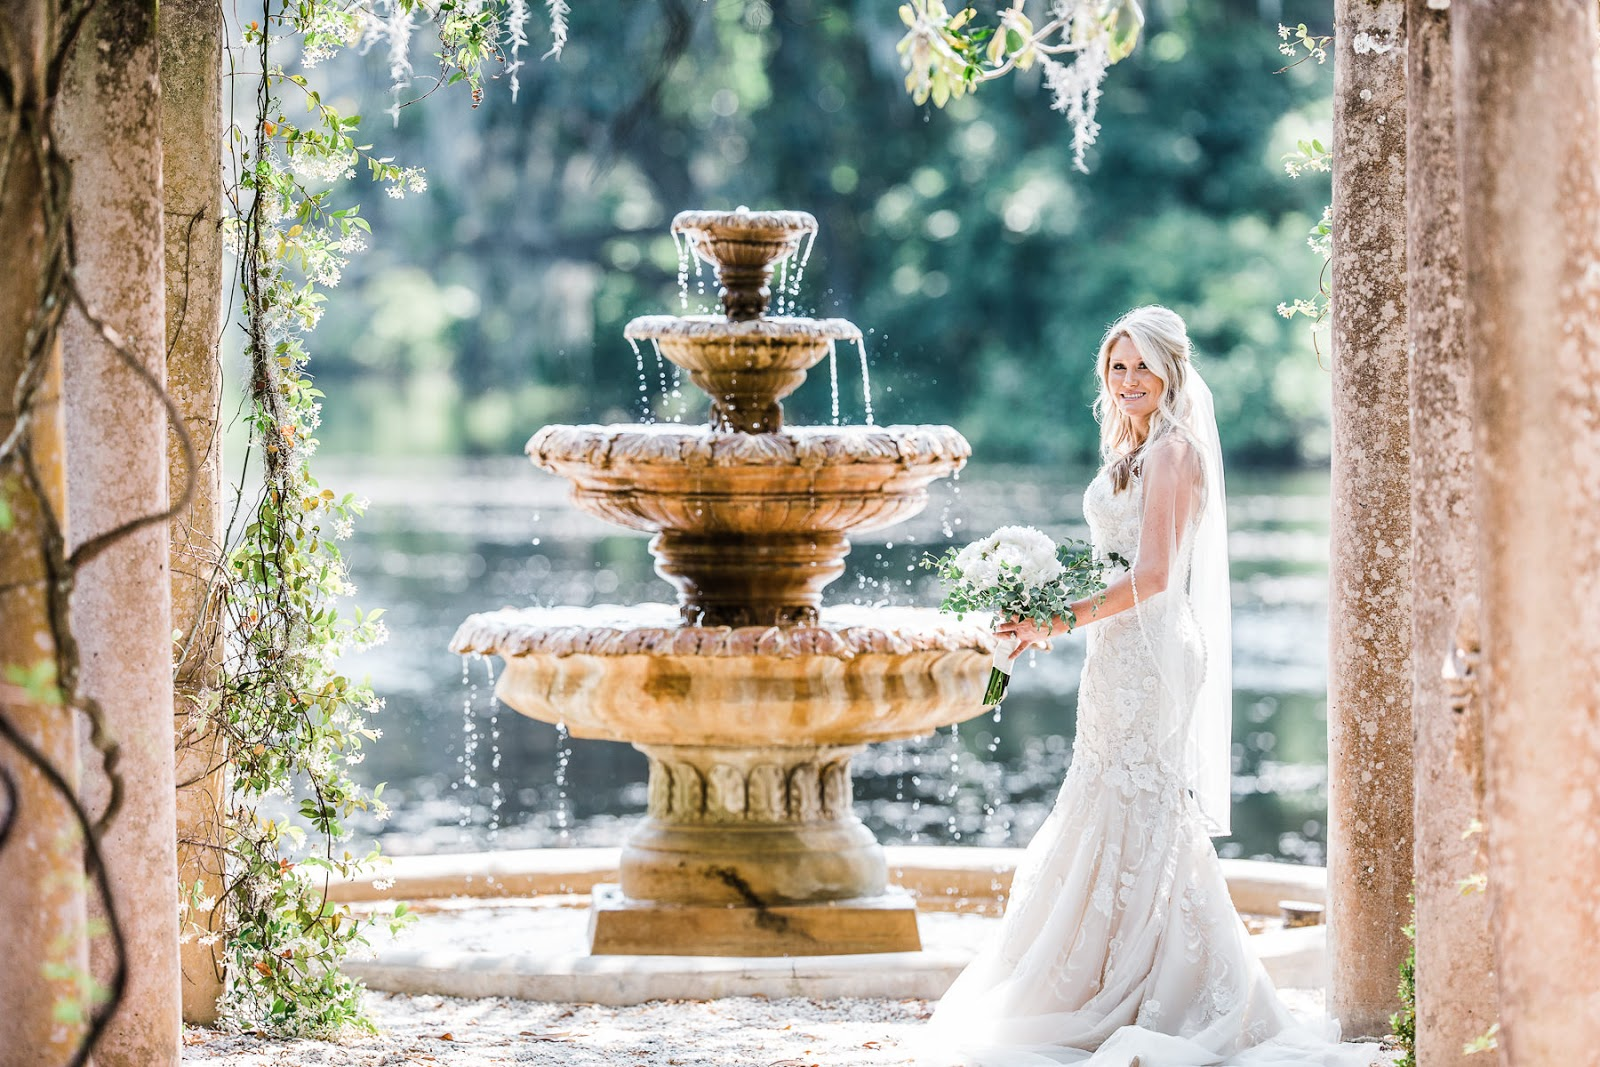 Bride in her wedding dress a the pergola fountain in Airlie Gardens in Wilmington NC - Wedding photography - Airlie Gardens Weddings